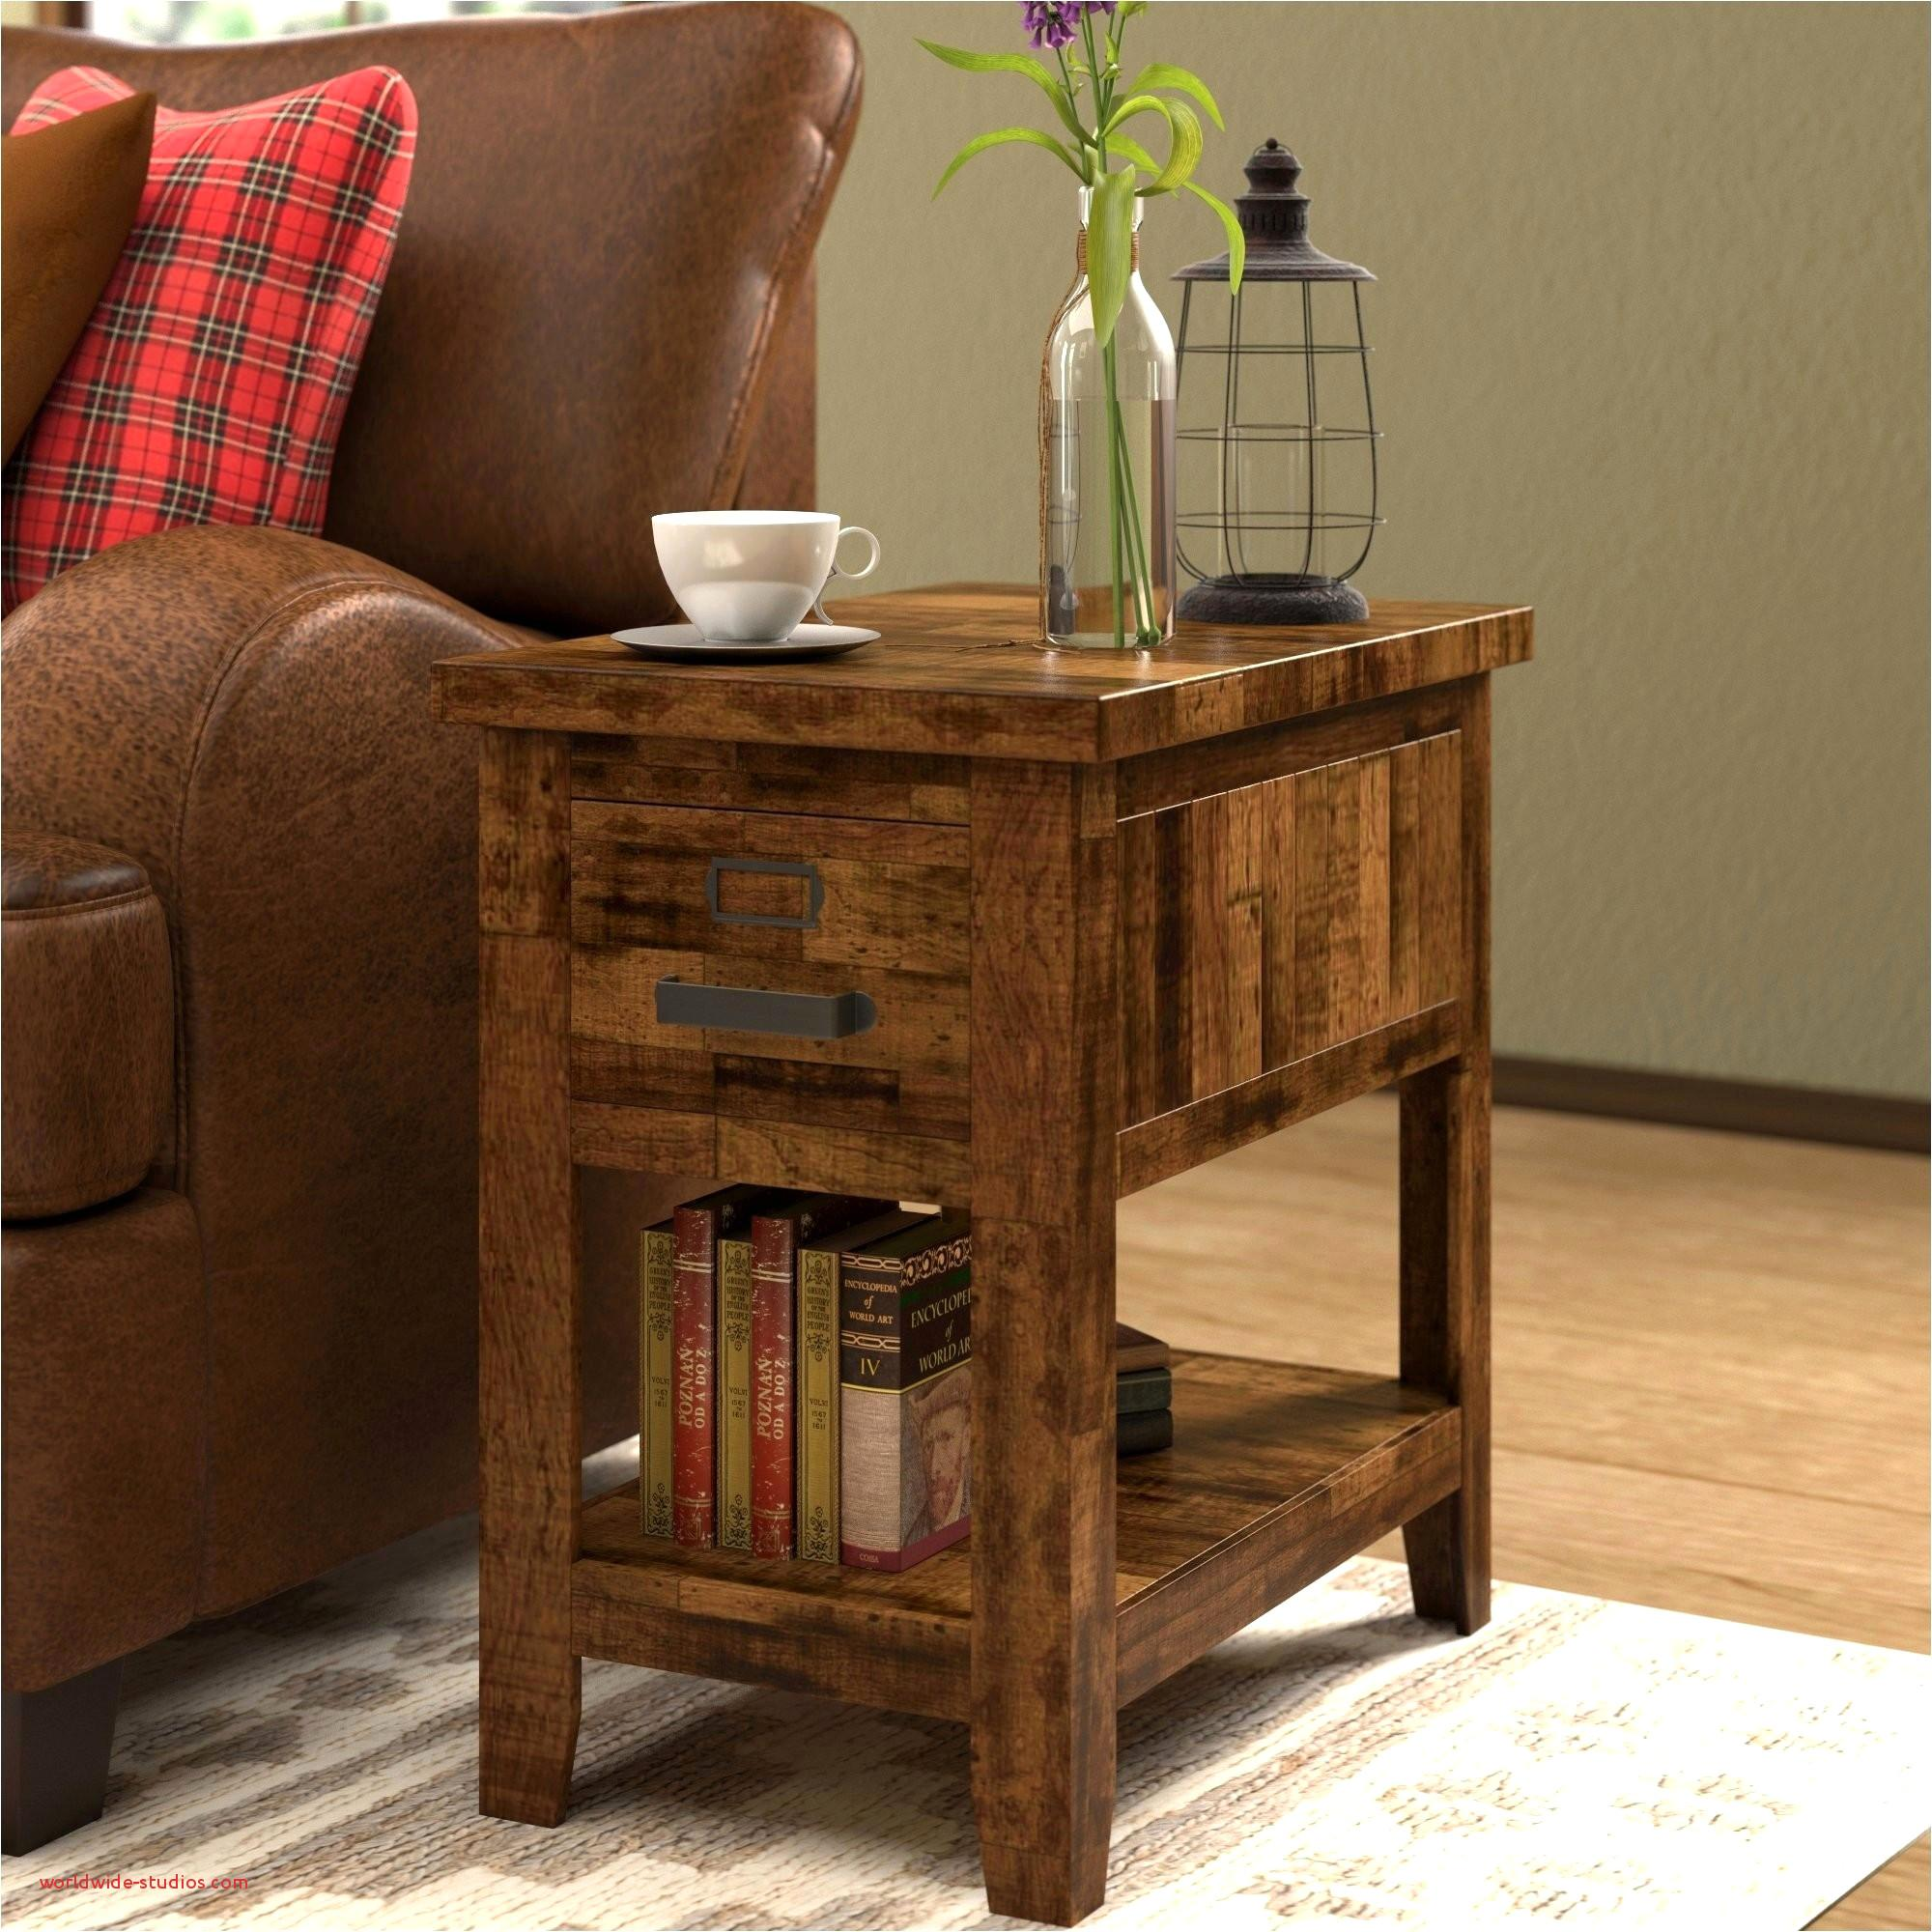 tree stump side table diy luxury top result nightstand set cherry wood dresser fridge bedroom night stands thin dark modern trunk accent luxurious coffee hammered metal dorm stuff